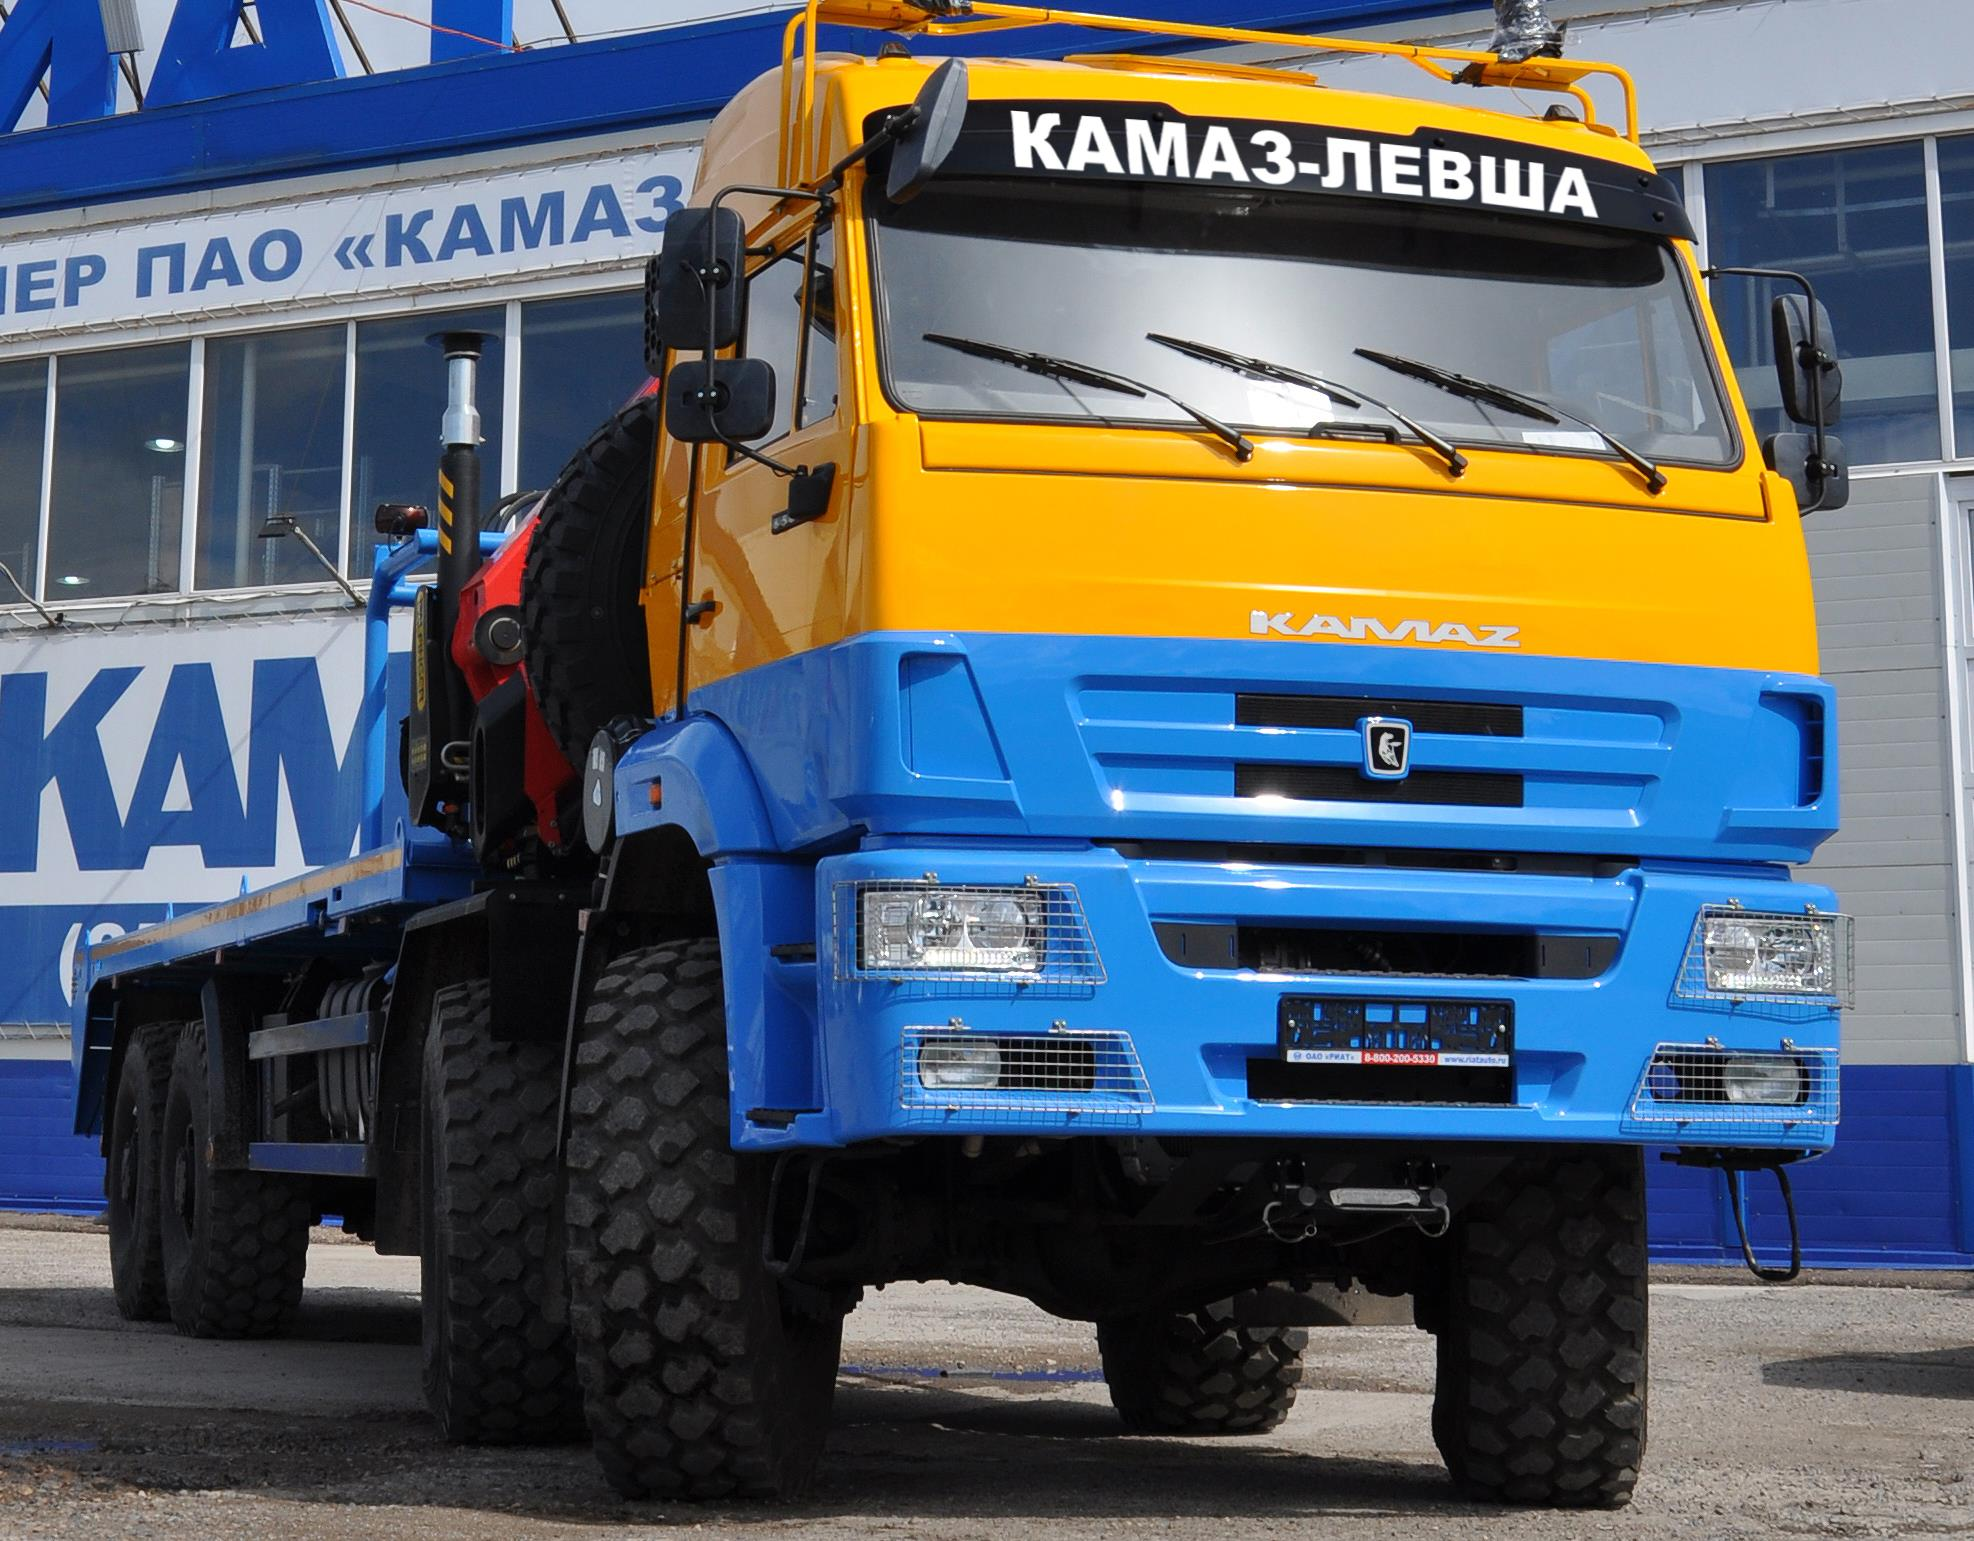 https://kamaz.ru/upload/iblock/c95/c9507d7815842cf51e95aa58920f3cd2.jpg